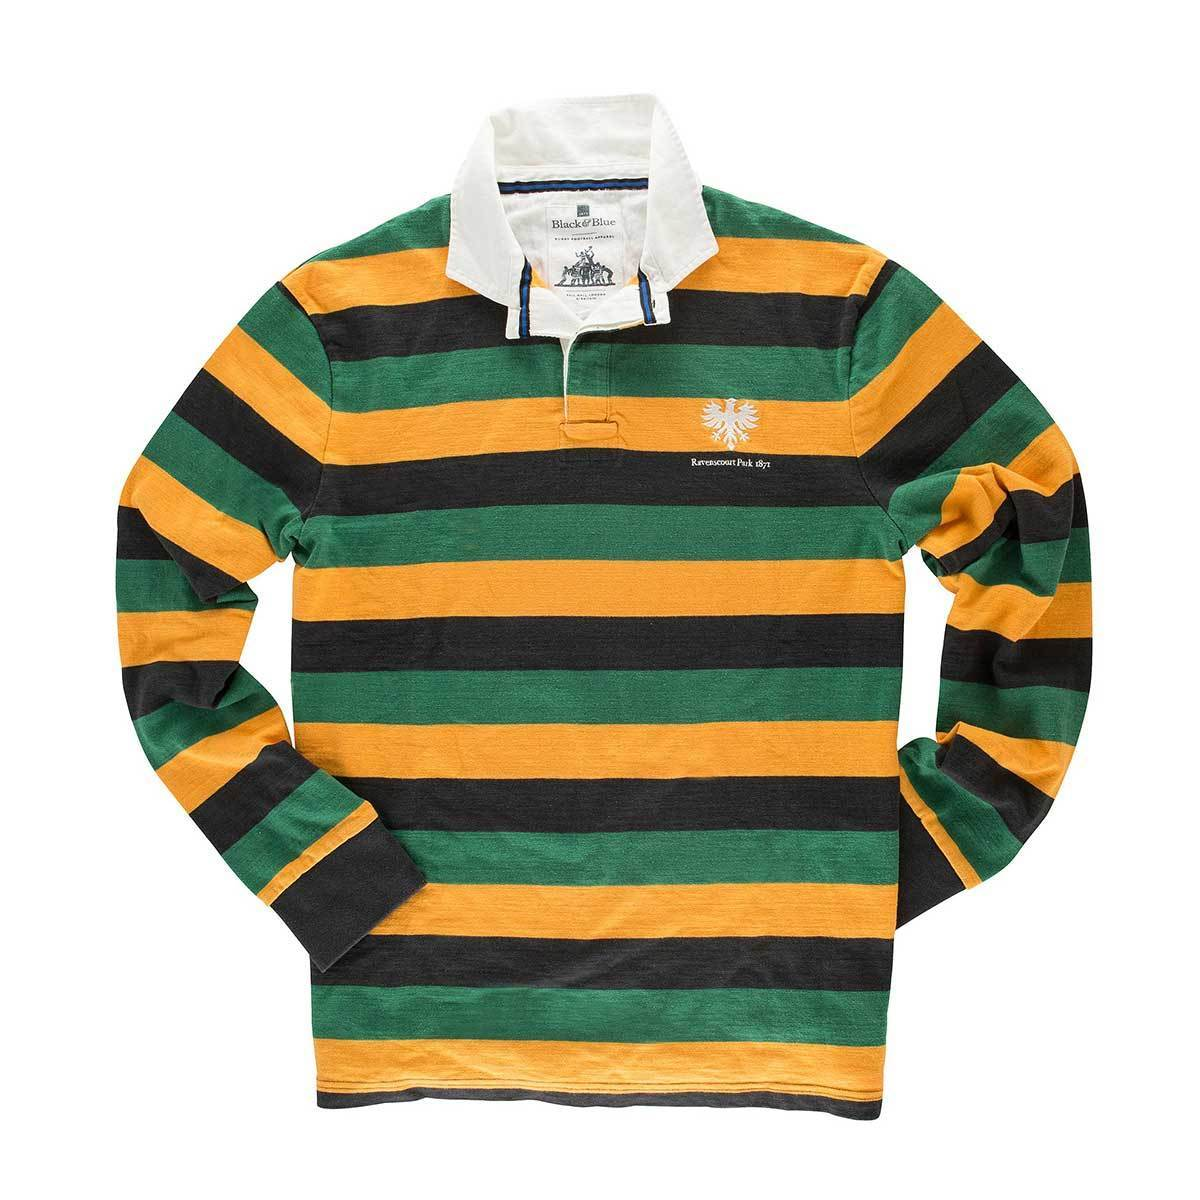 Vintage, Classic Cotton Rugby Shirt | Black & Blue 1871 | Ravenscourt Park 1871 Rugby Shirt